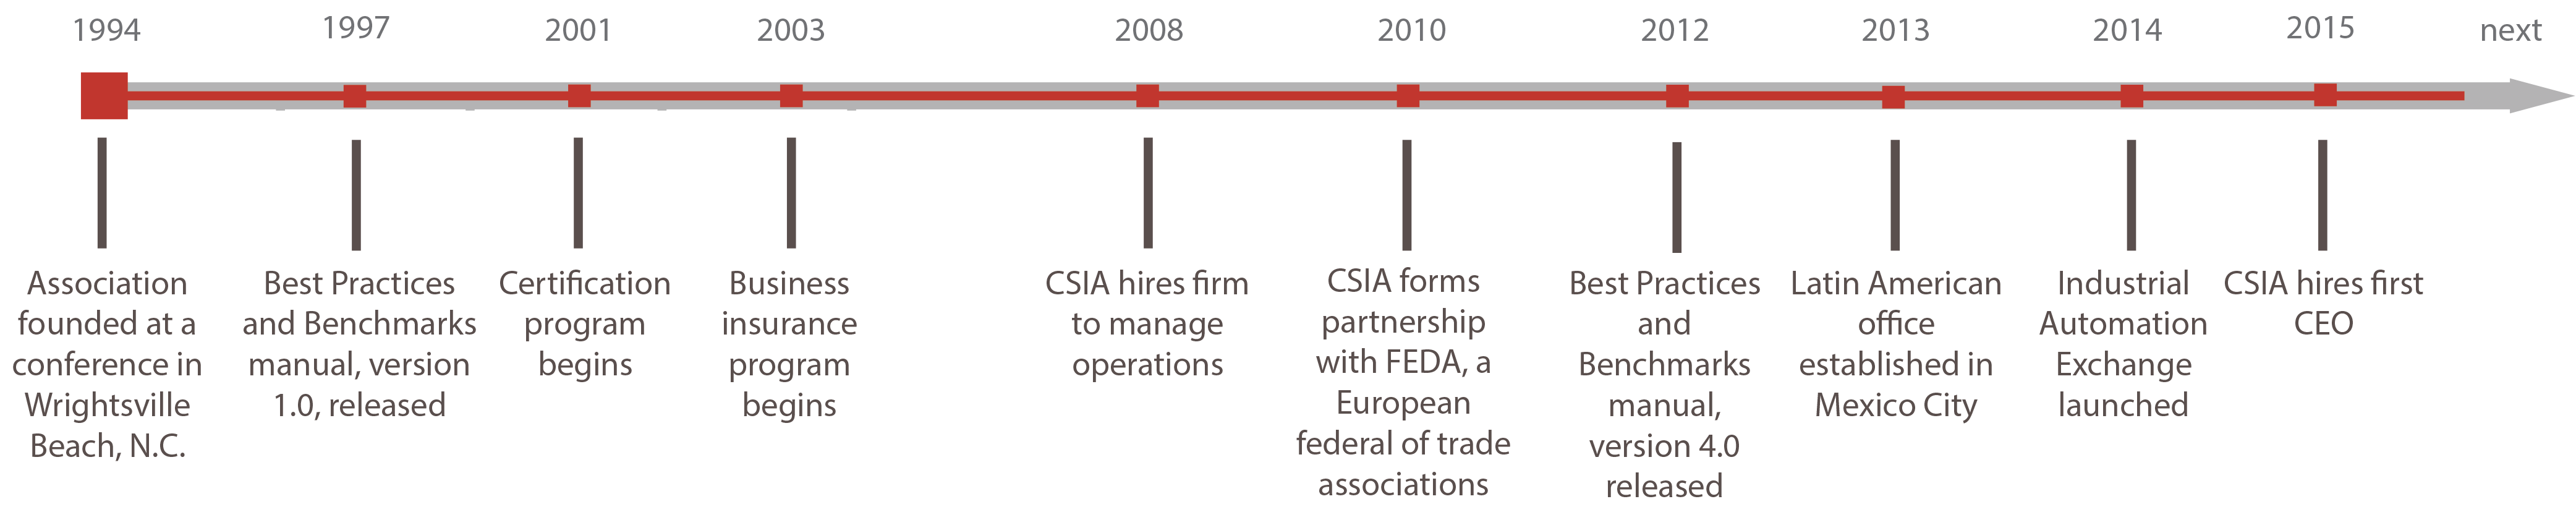 CSIA-history-timeline.png